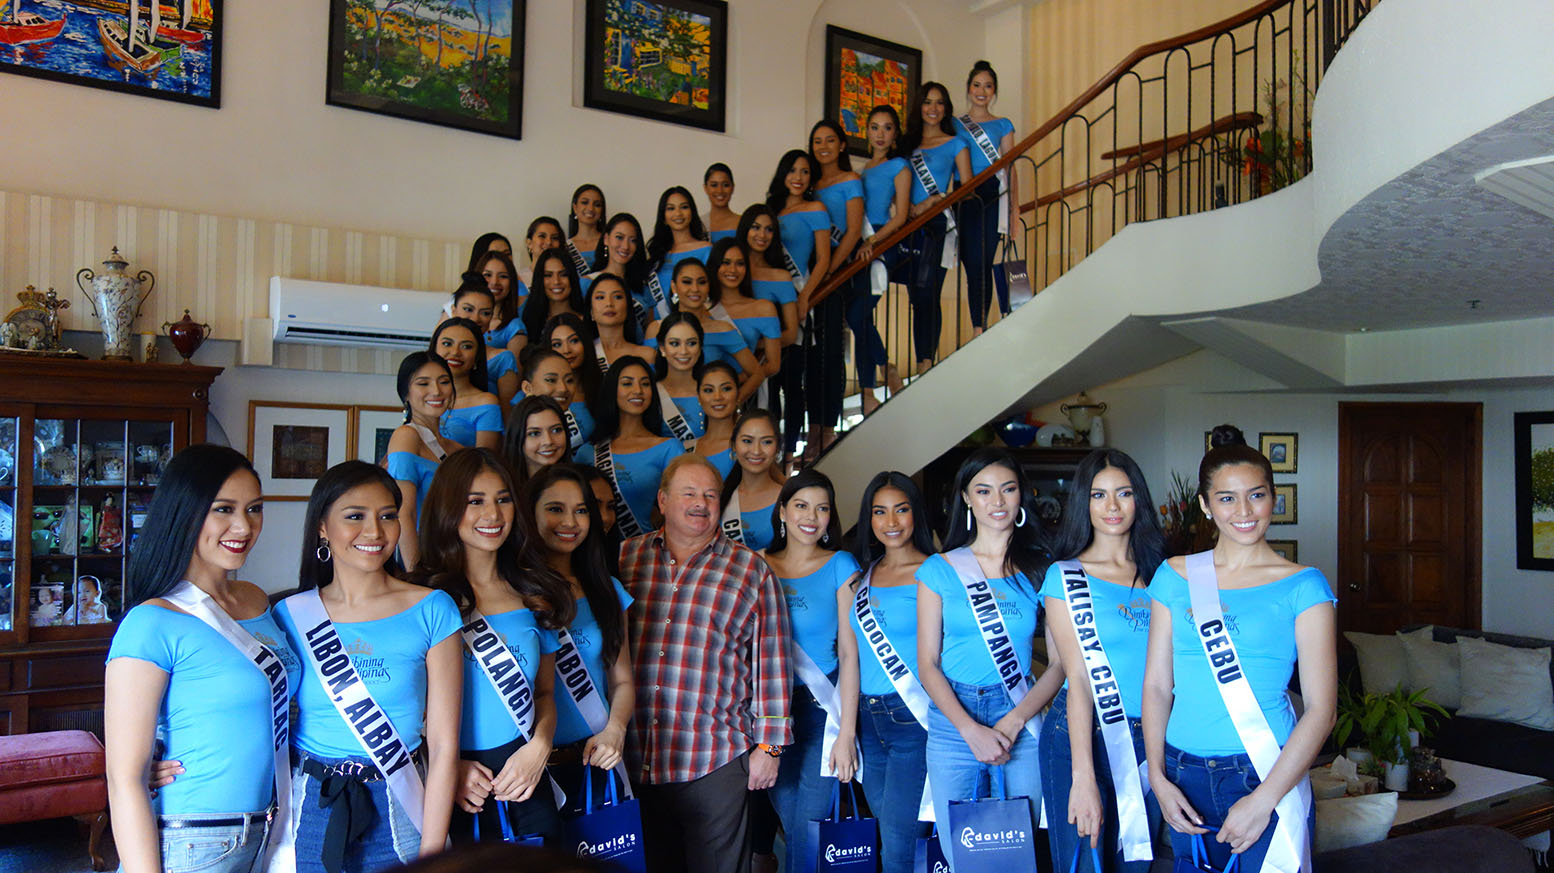 BINIBINING PILIPINAS 2019 BEAUTIES VIST DAVID'S SALON